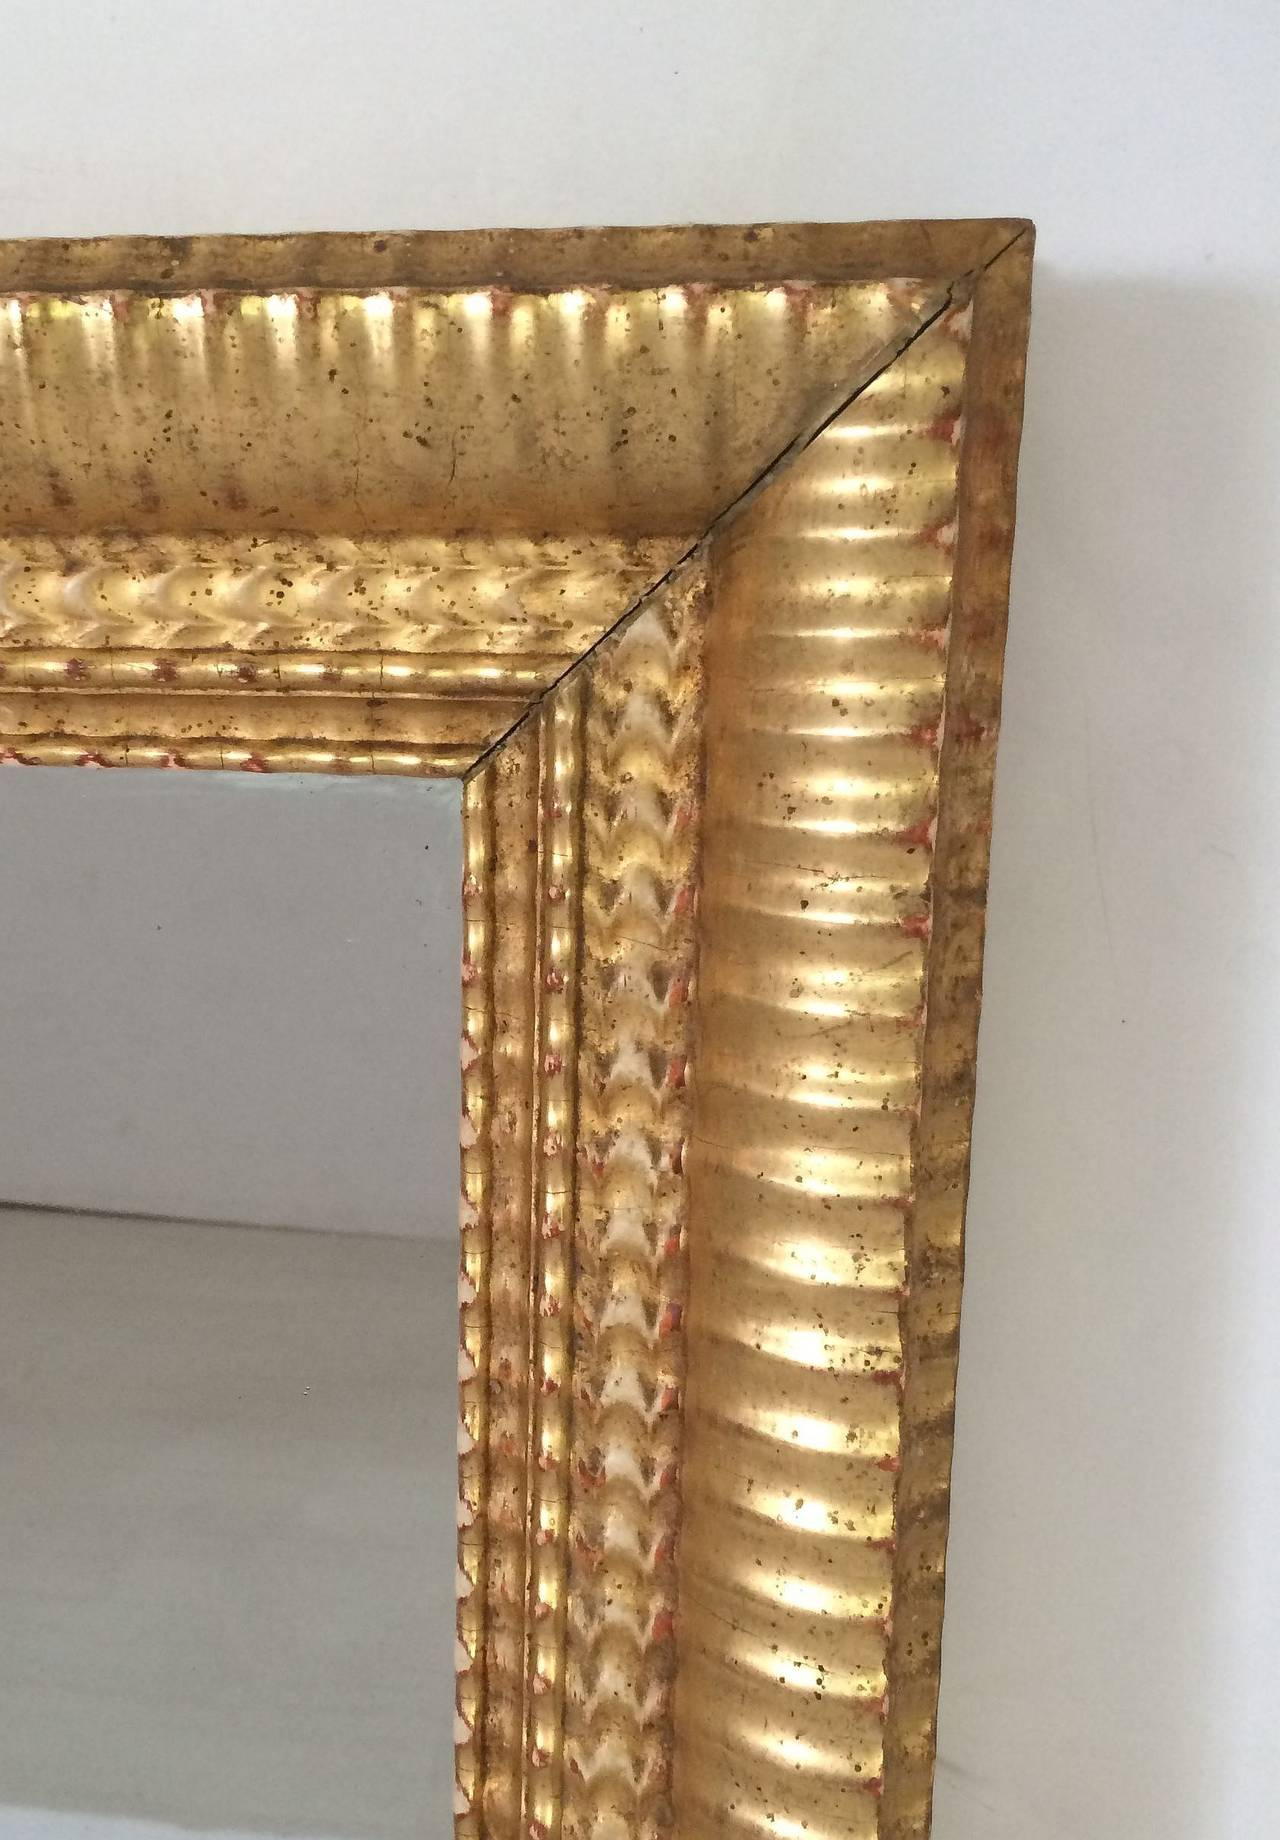 French Gilt Rectangular Wall Mirror (38 x 32) For Sale 1